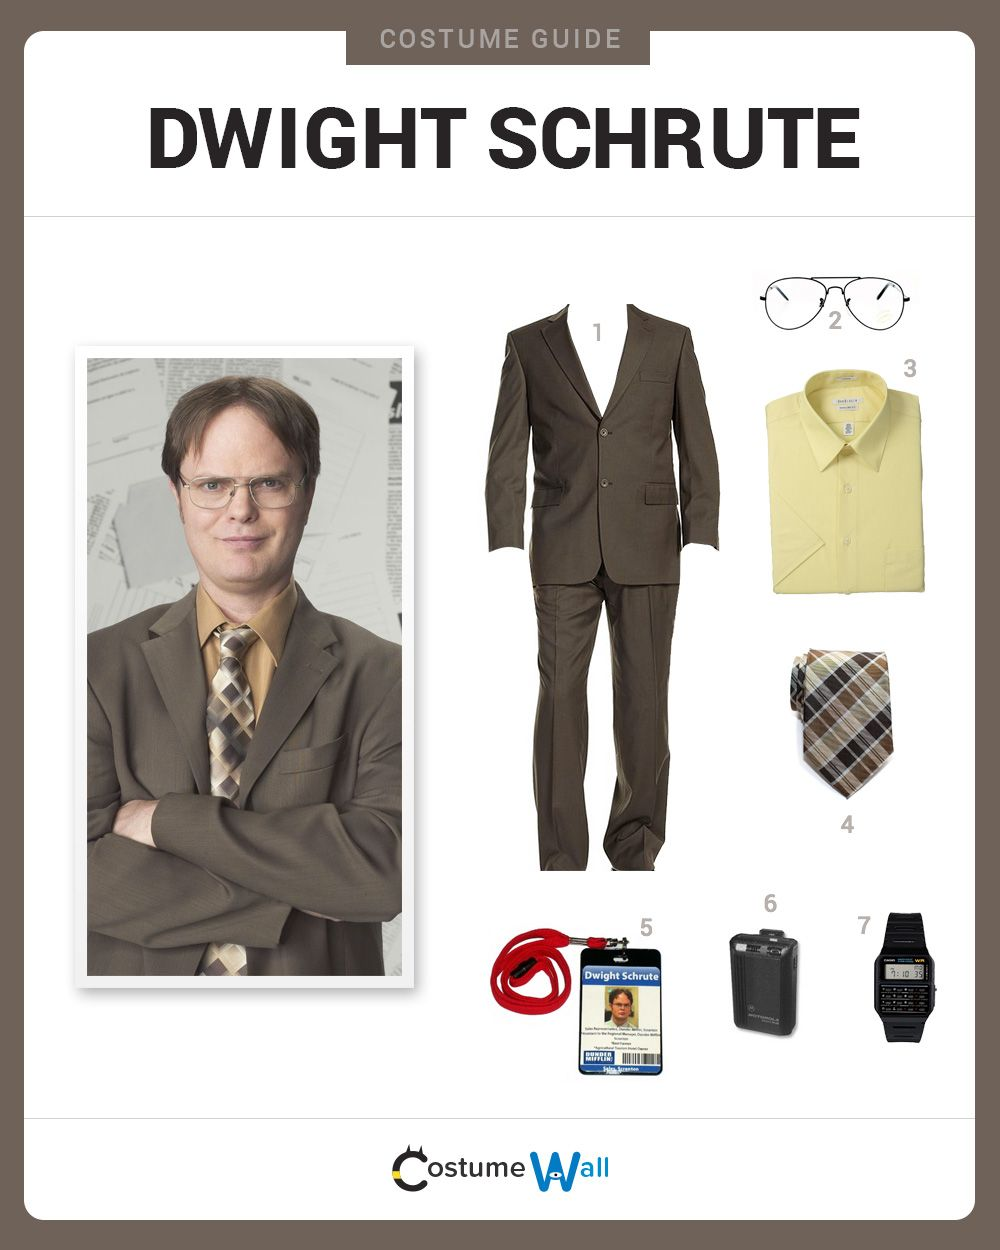 dress like dwight schrute dwight schrute costumes and. Black Bedroom Furniture Sets. Home Design Ideas